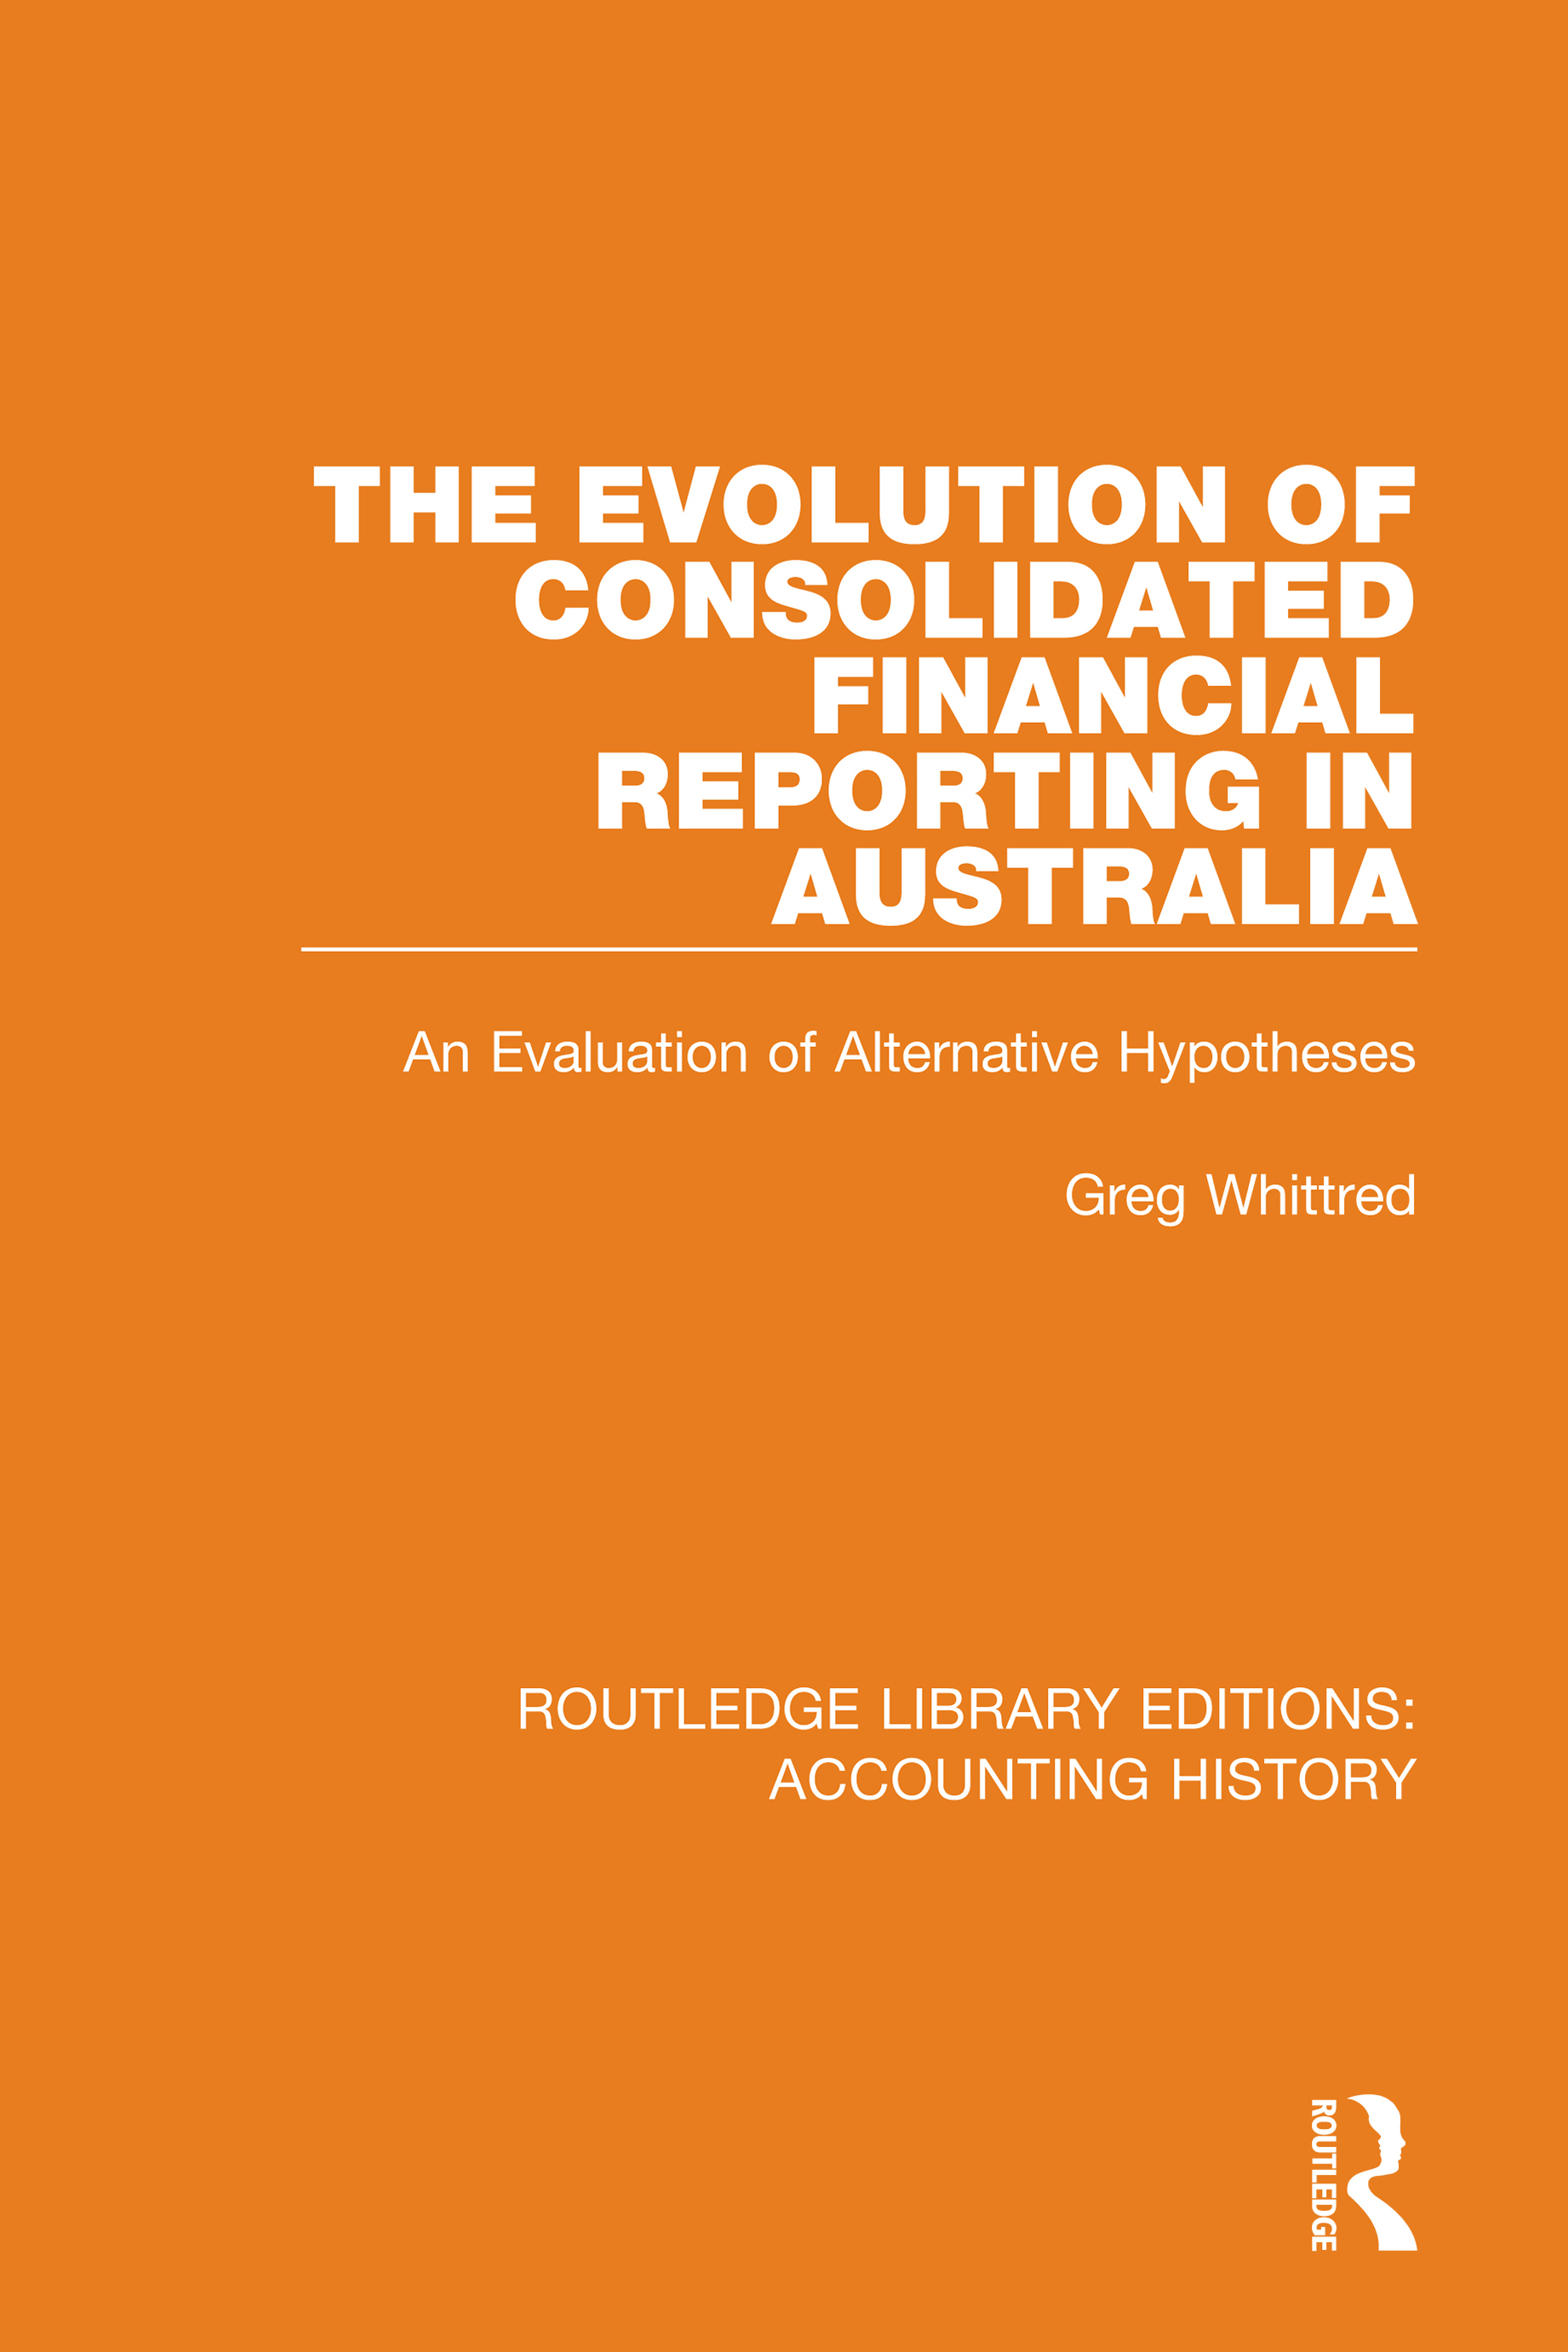 The Evolution of Consolidated Financial Reporting in Australia